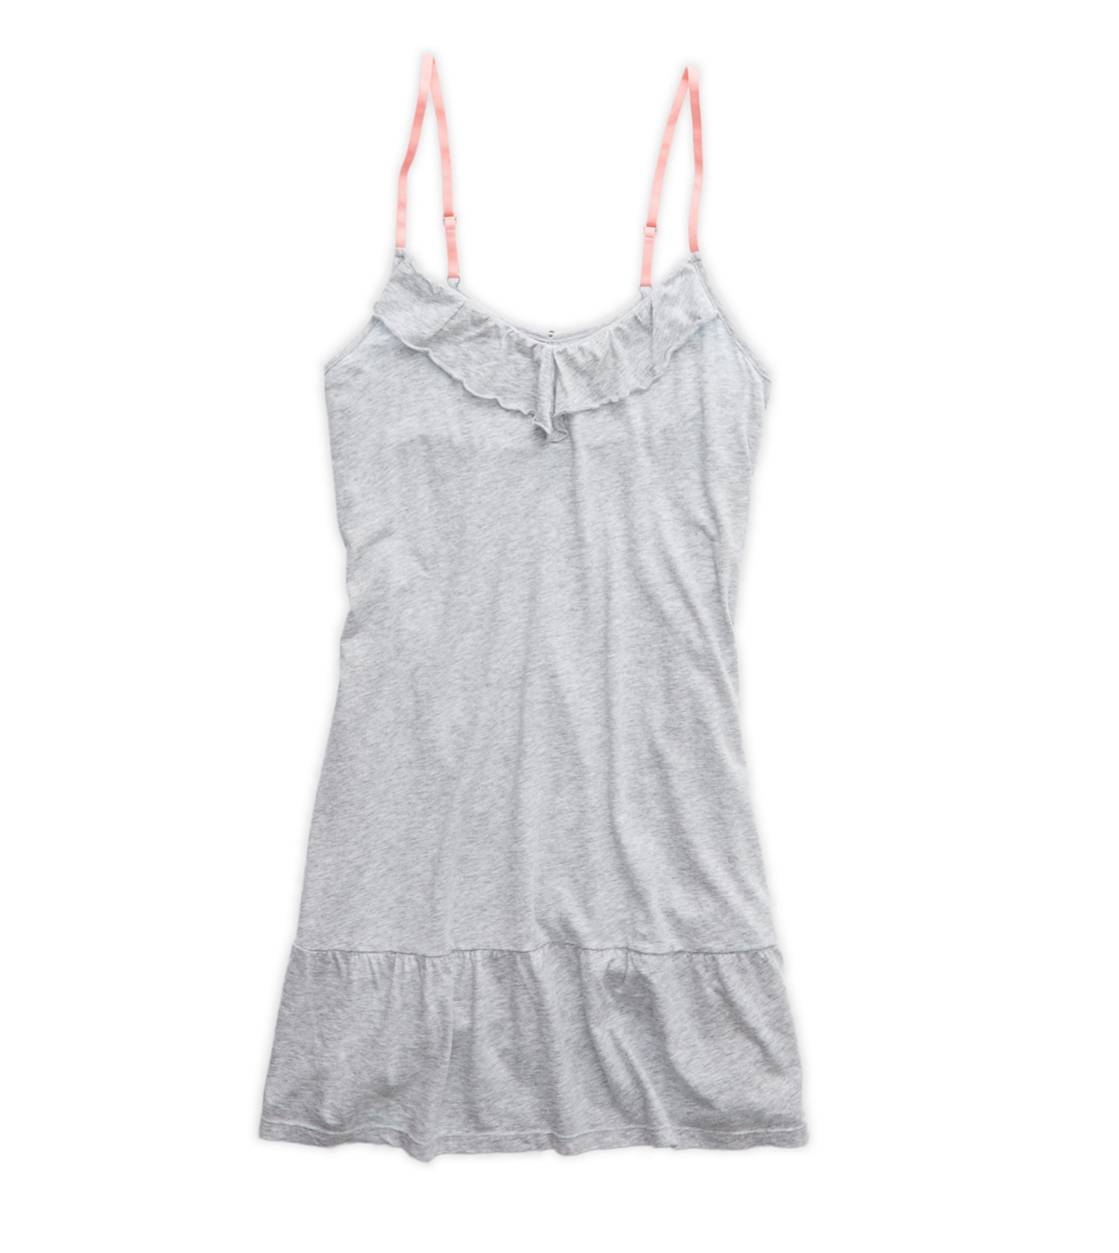 Medium Heather Grey Aerie Softest Ruffle Nightie